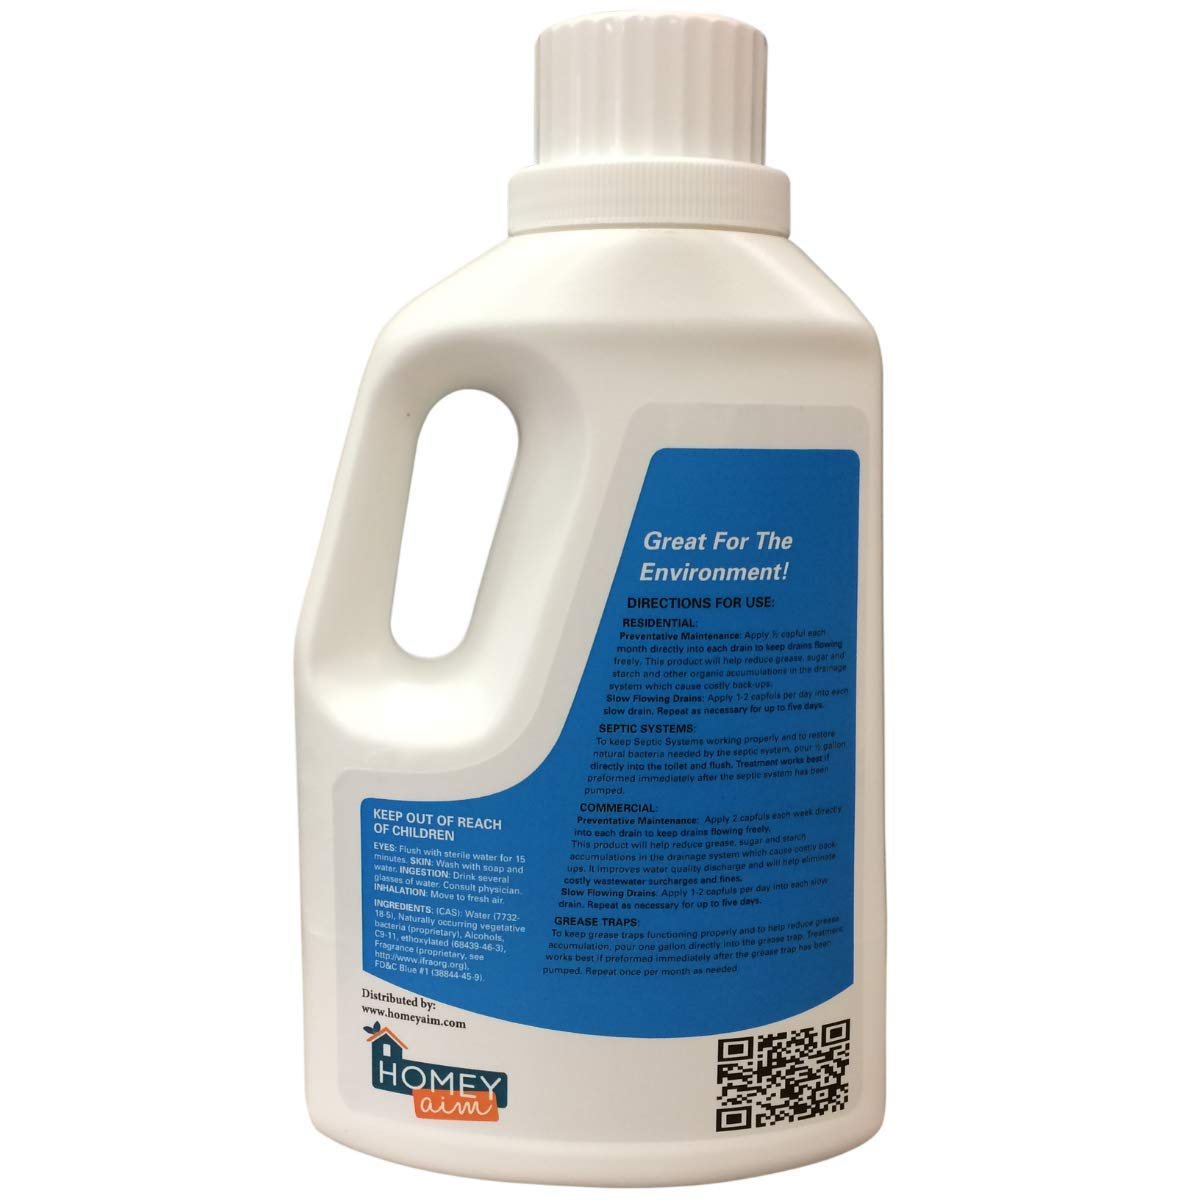 Garbage Disposal Cleaner and Deodorizer By Homey Aim - Keep Kitchen Drains and Disposals Clean without Clog - Unique Green Eco-Friendly Enzymes - Natural Scent - Safe for any Pipe and for Septic Tanks by Homey Aim (Image #2)